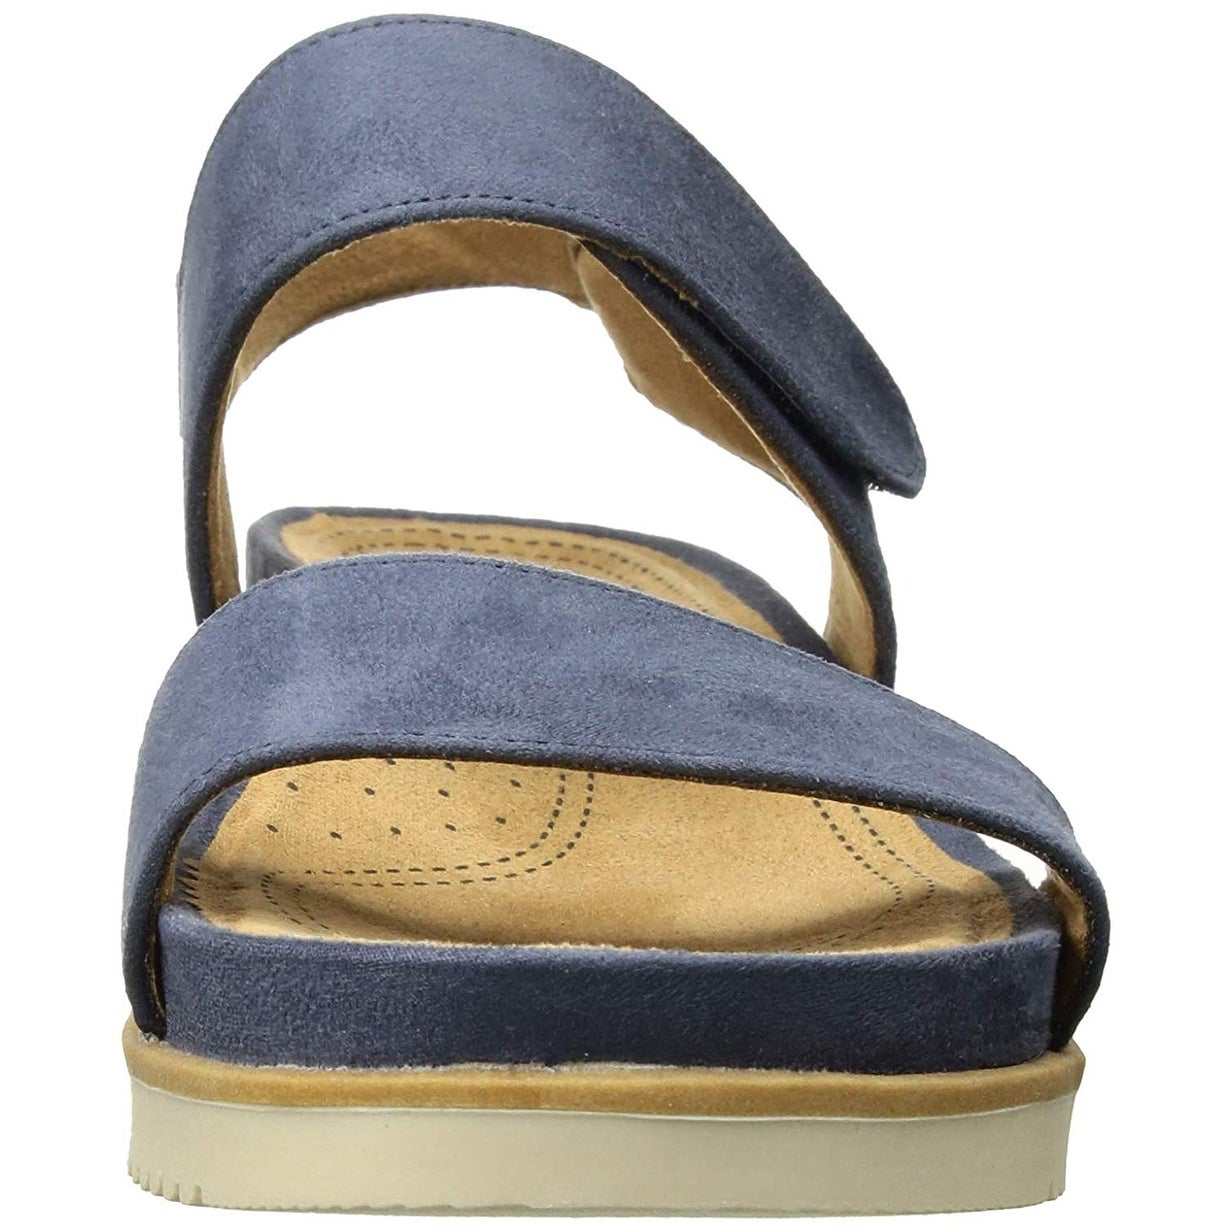 567aa2a31f23 Shop Natural Soul Women s Kaila Flat Sandal - Free Shipping On Orders Over   45 - Overstock - 25725043